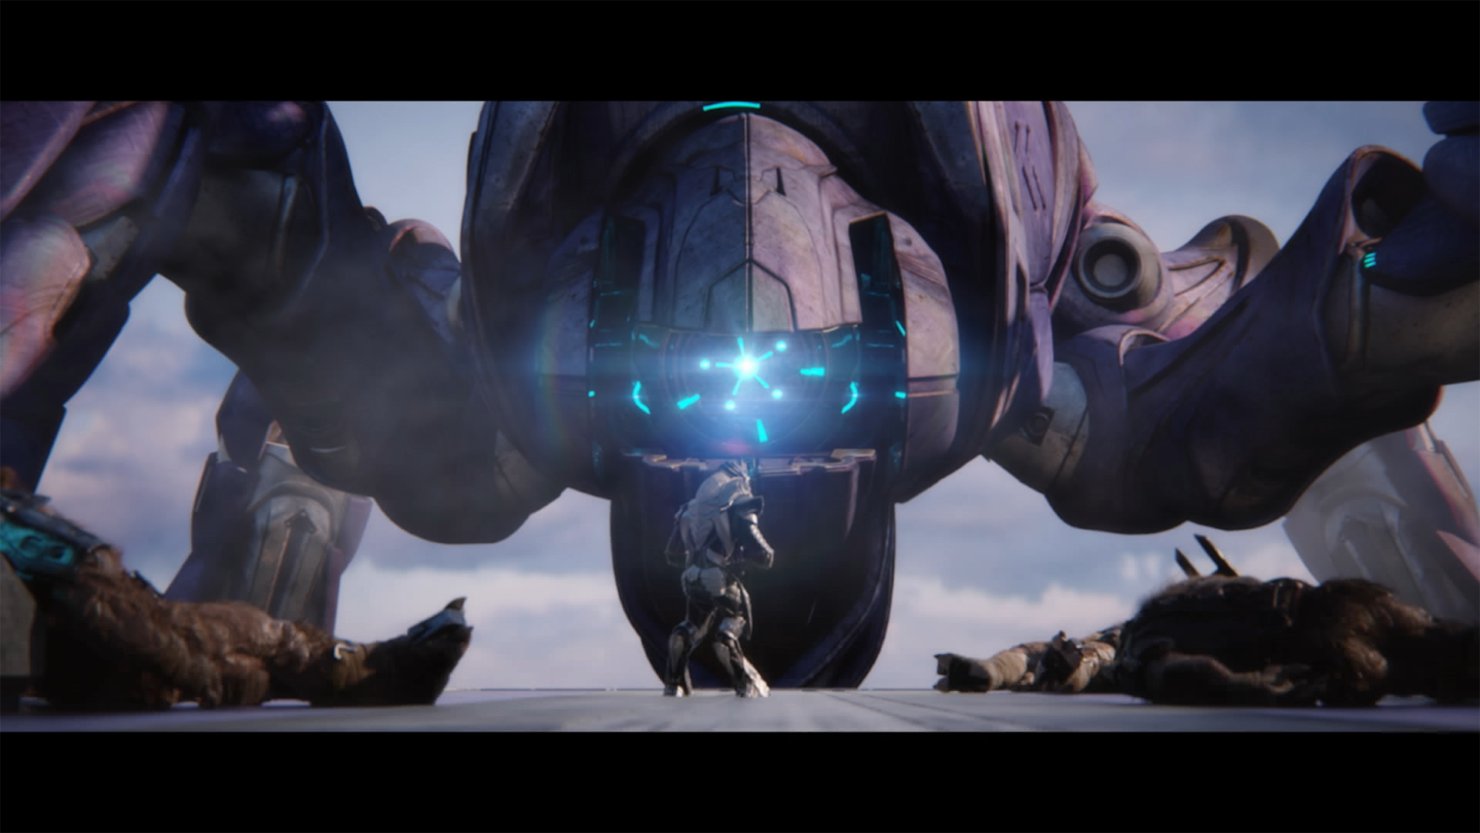 halo-master-chief-collection-2020_halo2anniversary_cinematic_17_nowatermark_1920x1080